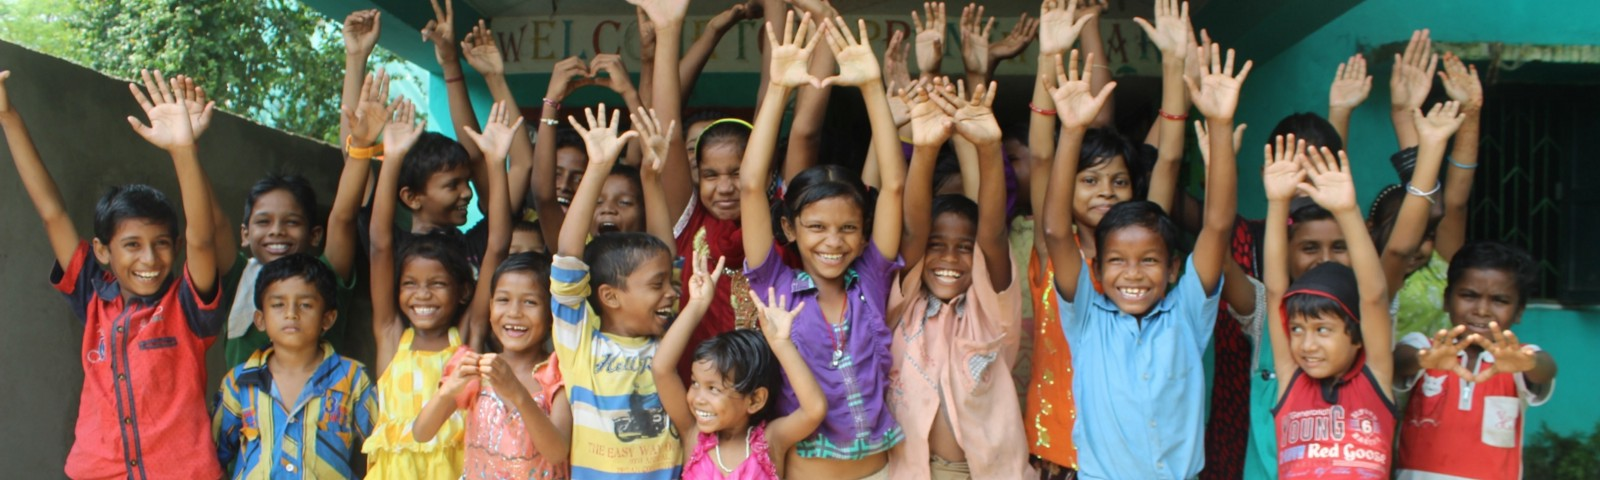 Image source :https://www.globalgiving.org/projects/brighter-future-for-orphans-in-india/reports/